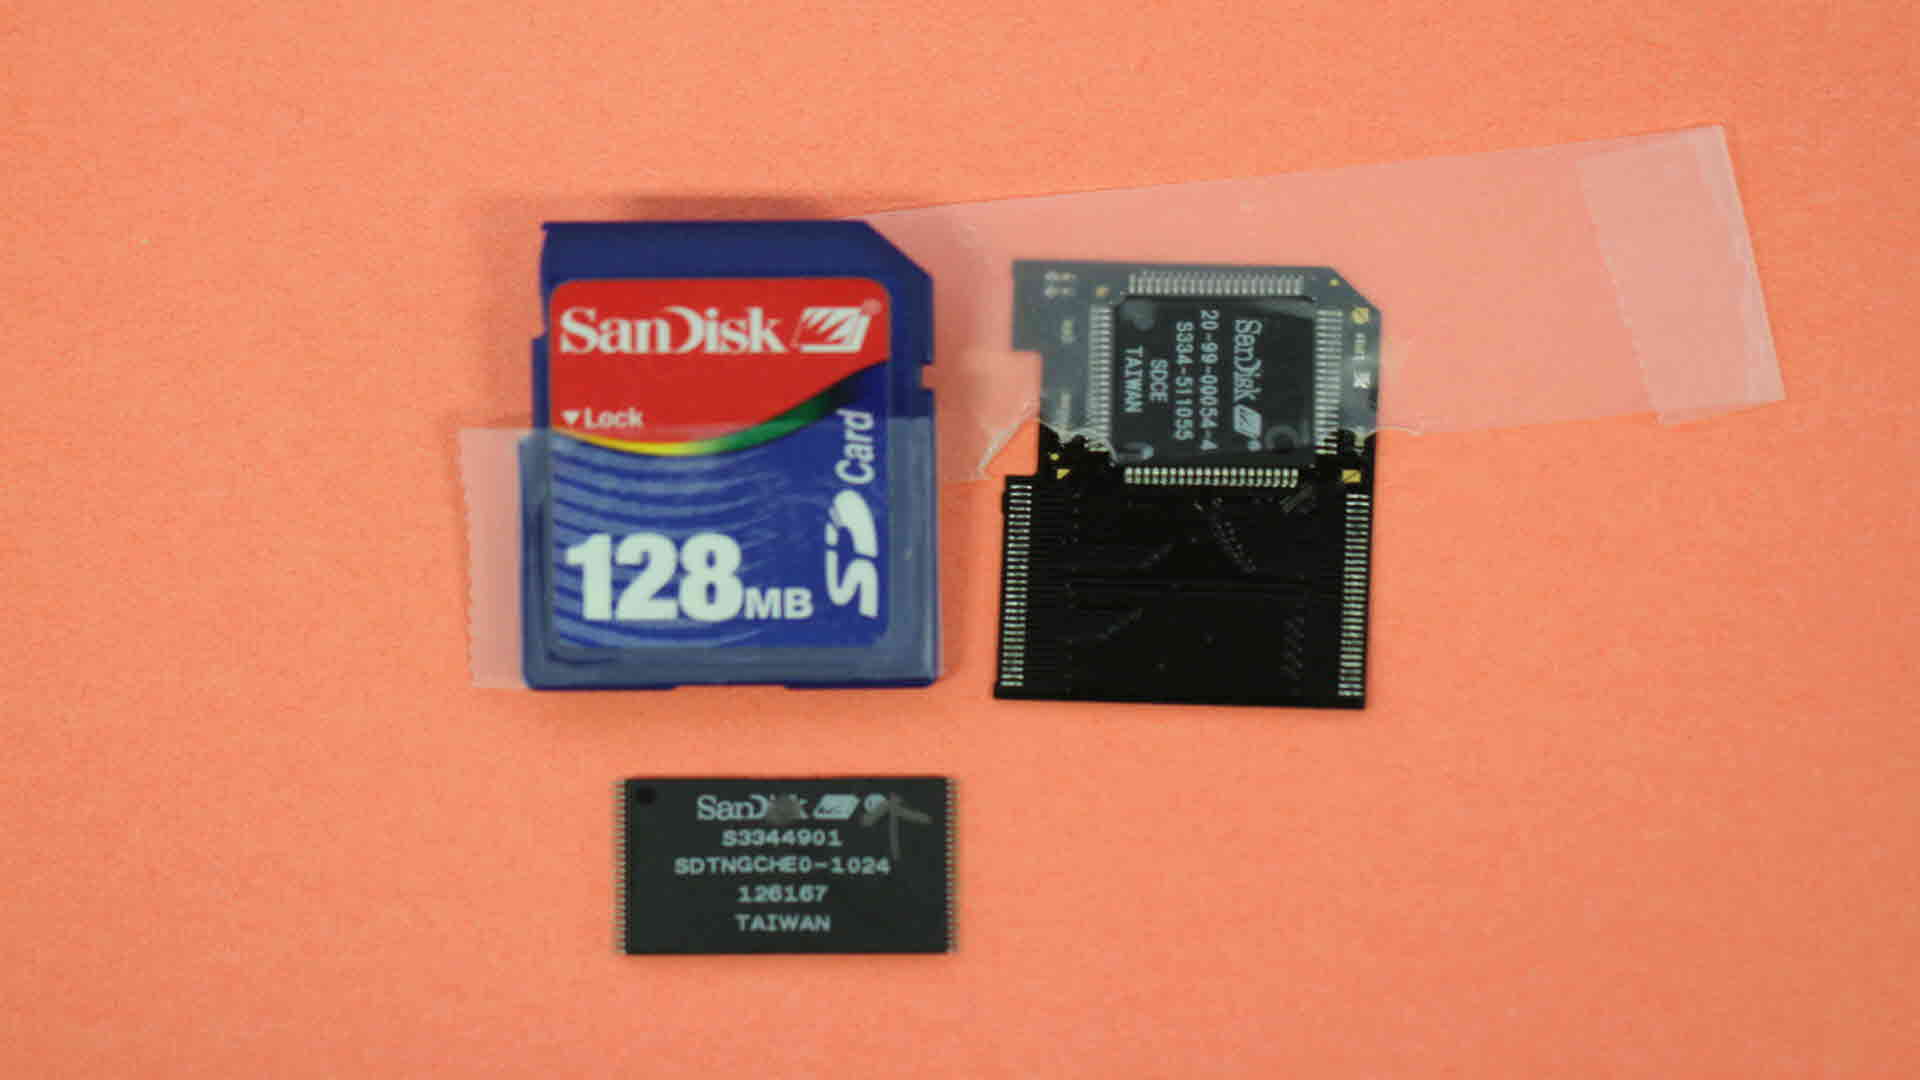 sandisk-128mb-sd-recovery